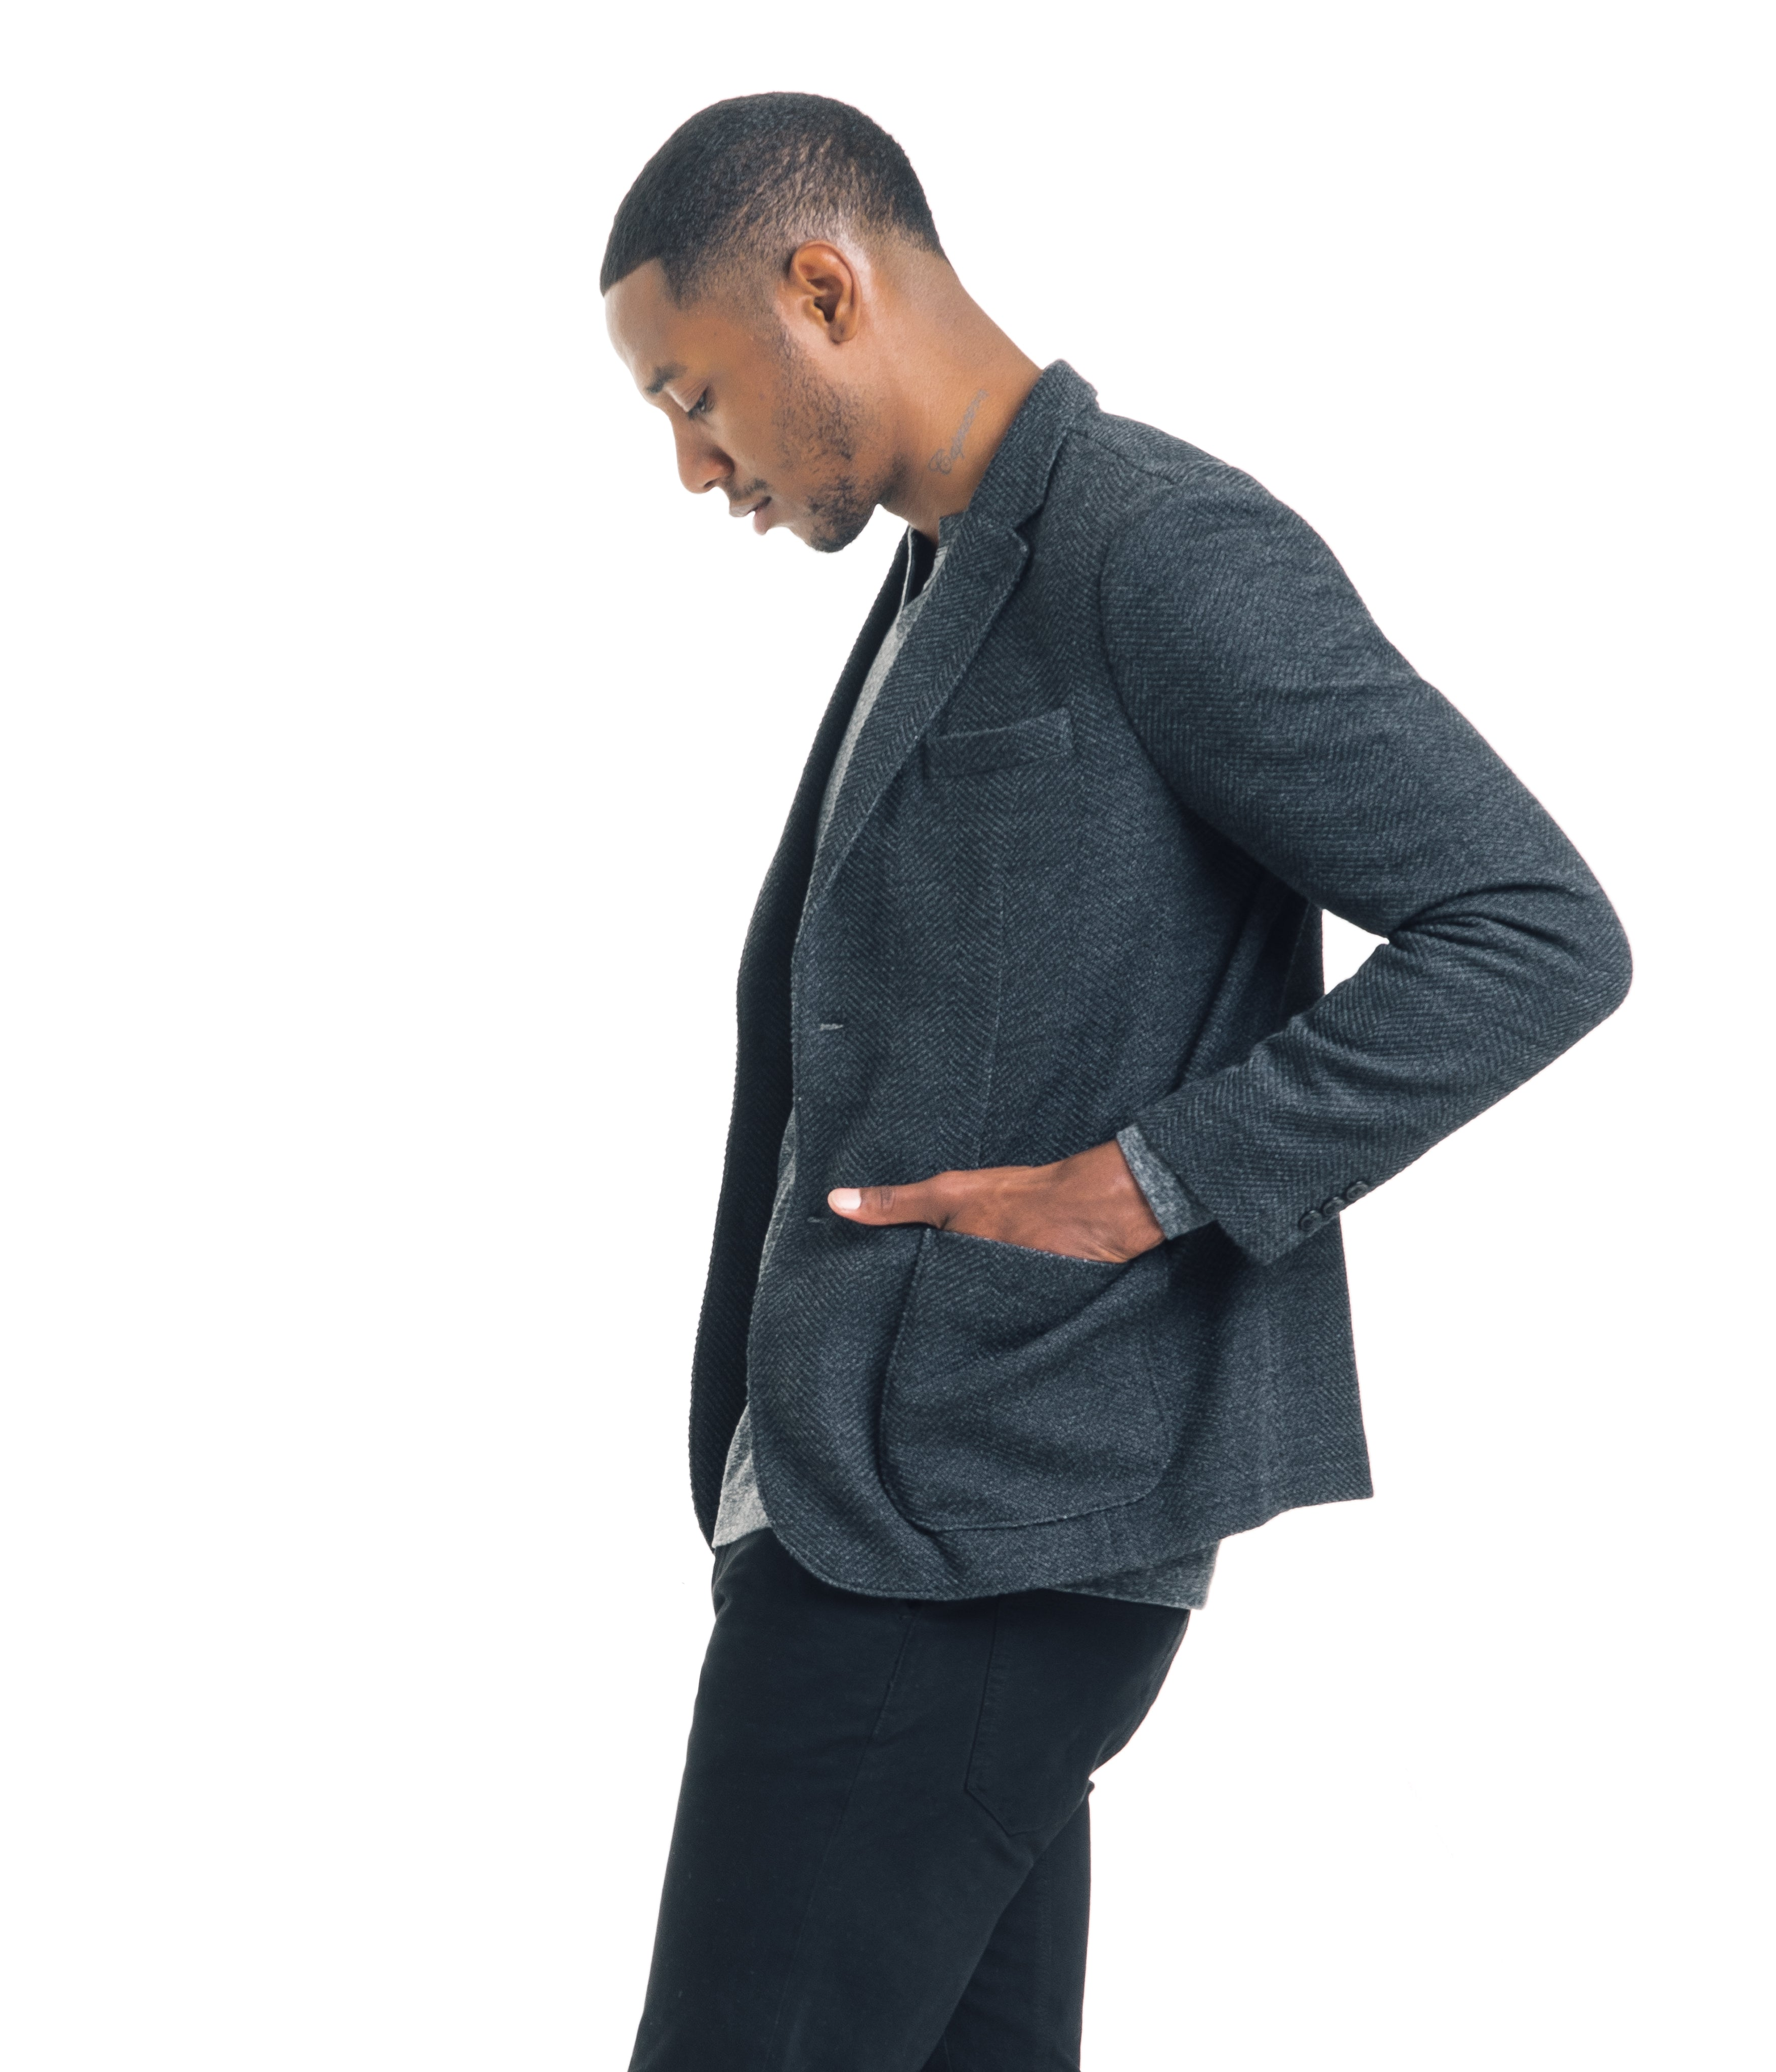 Double Face Herringbone Jersey Soft Blazer - Charcoal - Knitted Blazer - Good Man Brand